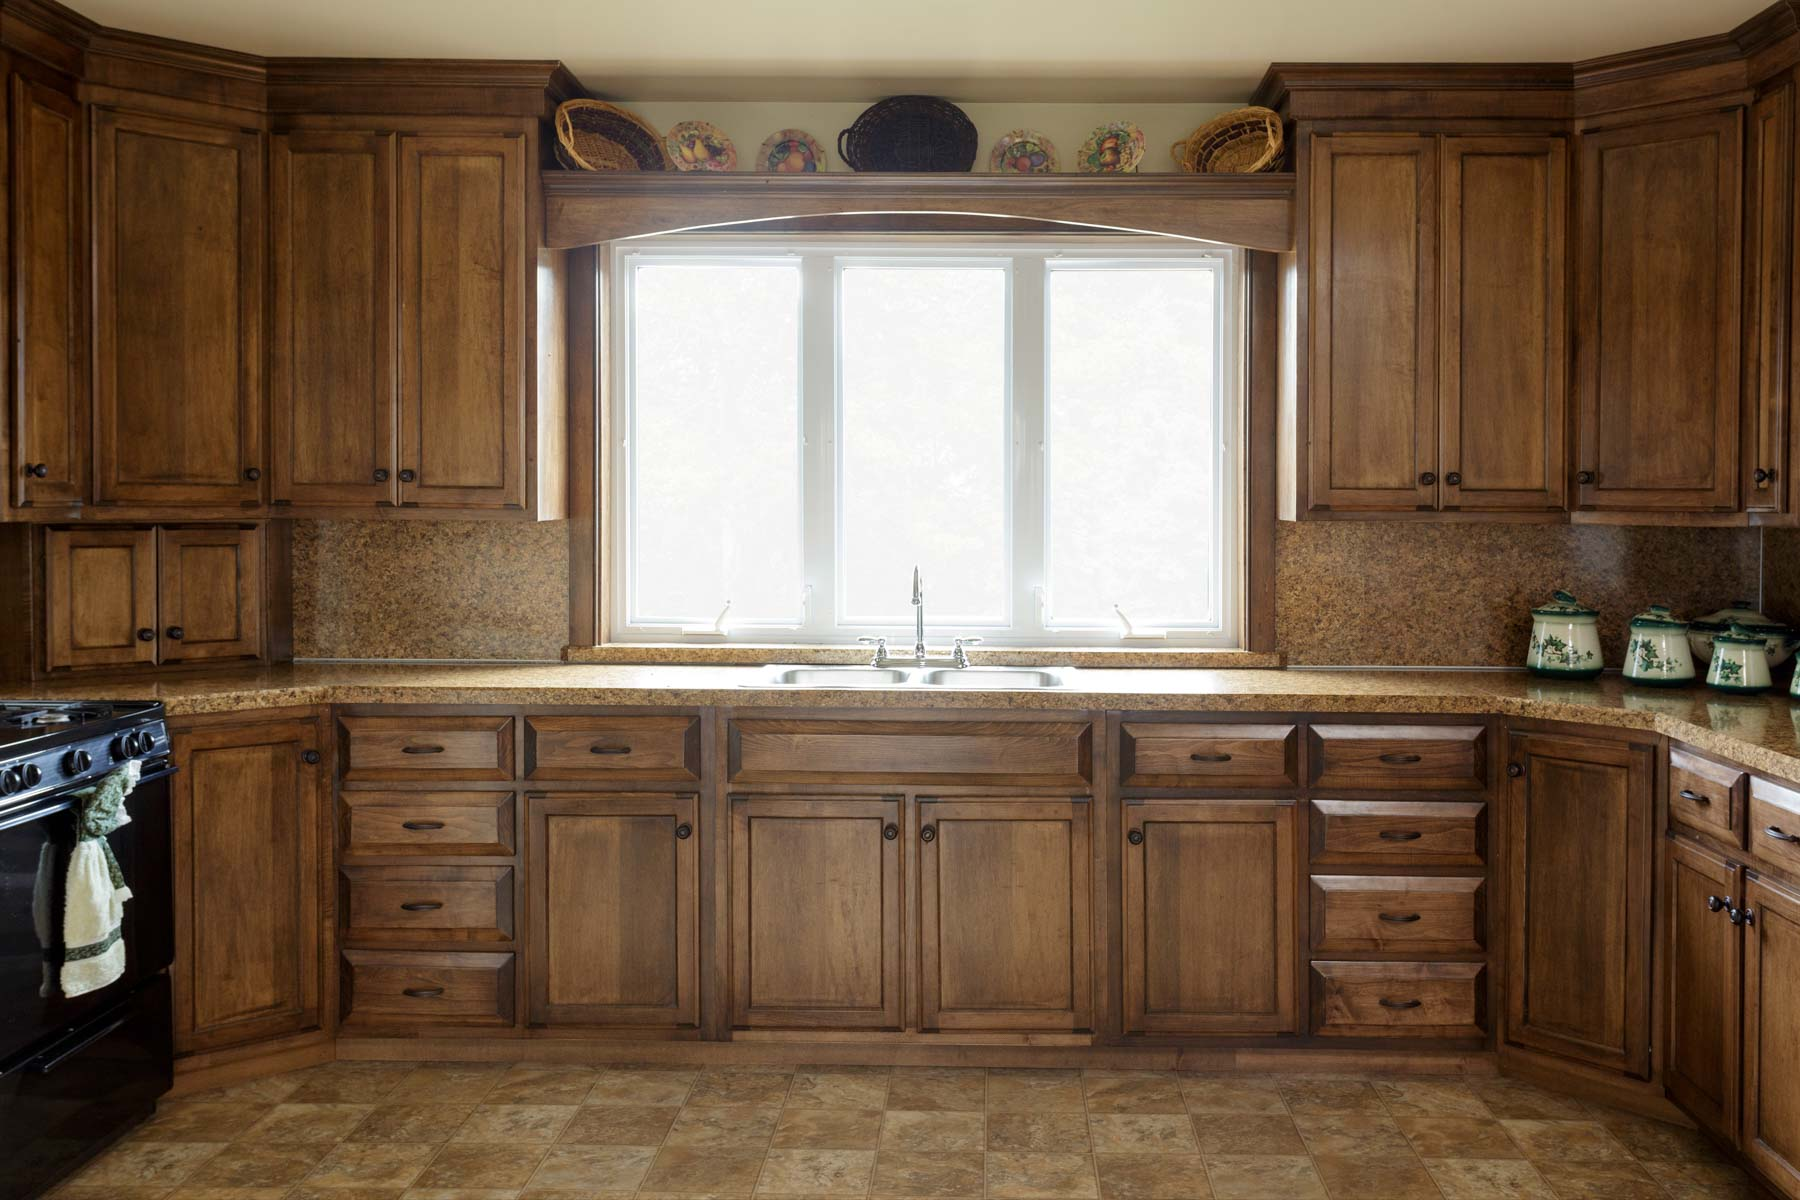 Custom Amish Kitchen Cabinets In Lancaster County Pa Misty Creek Woodworking